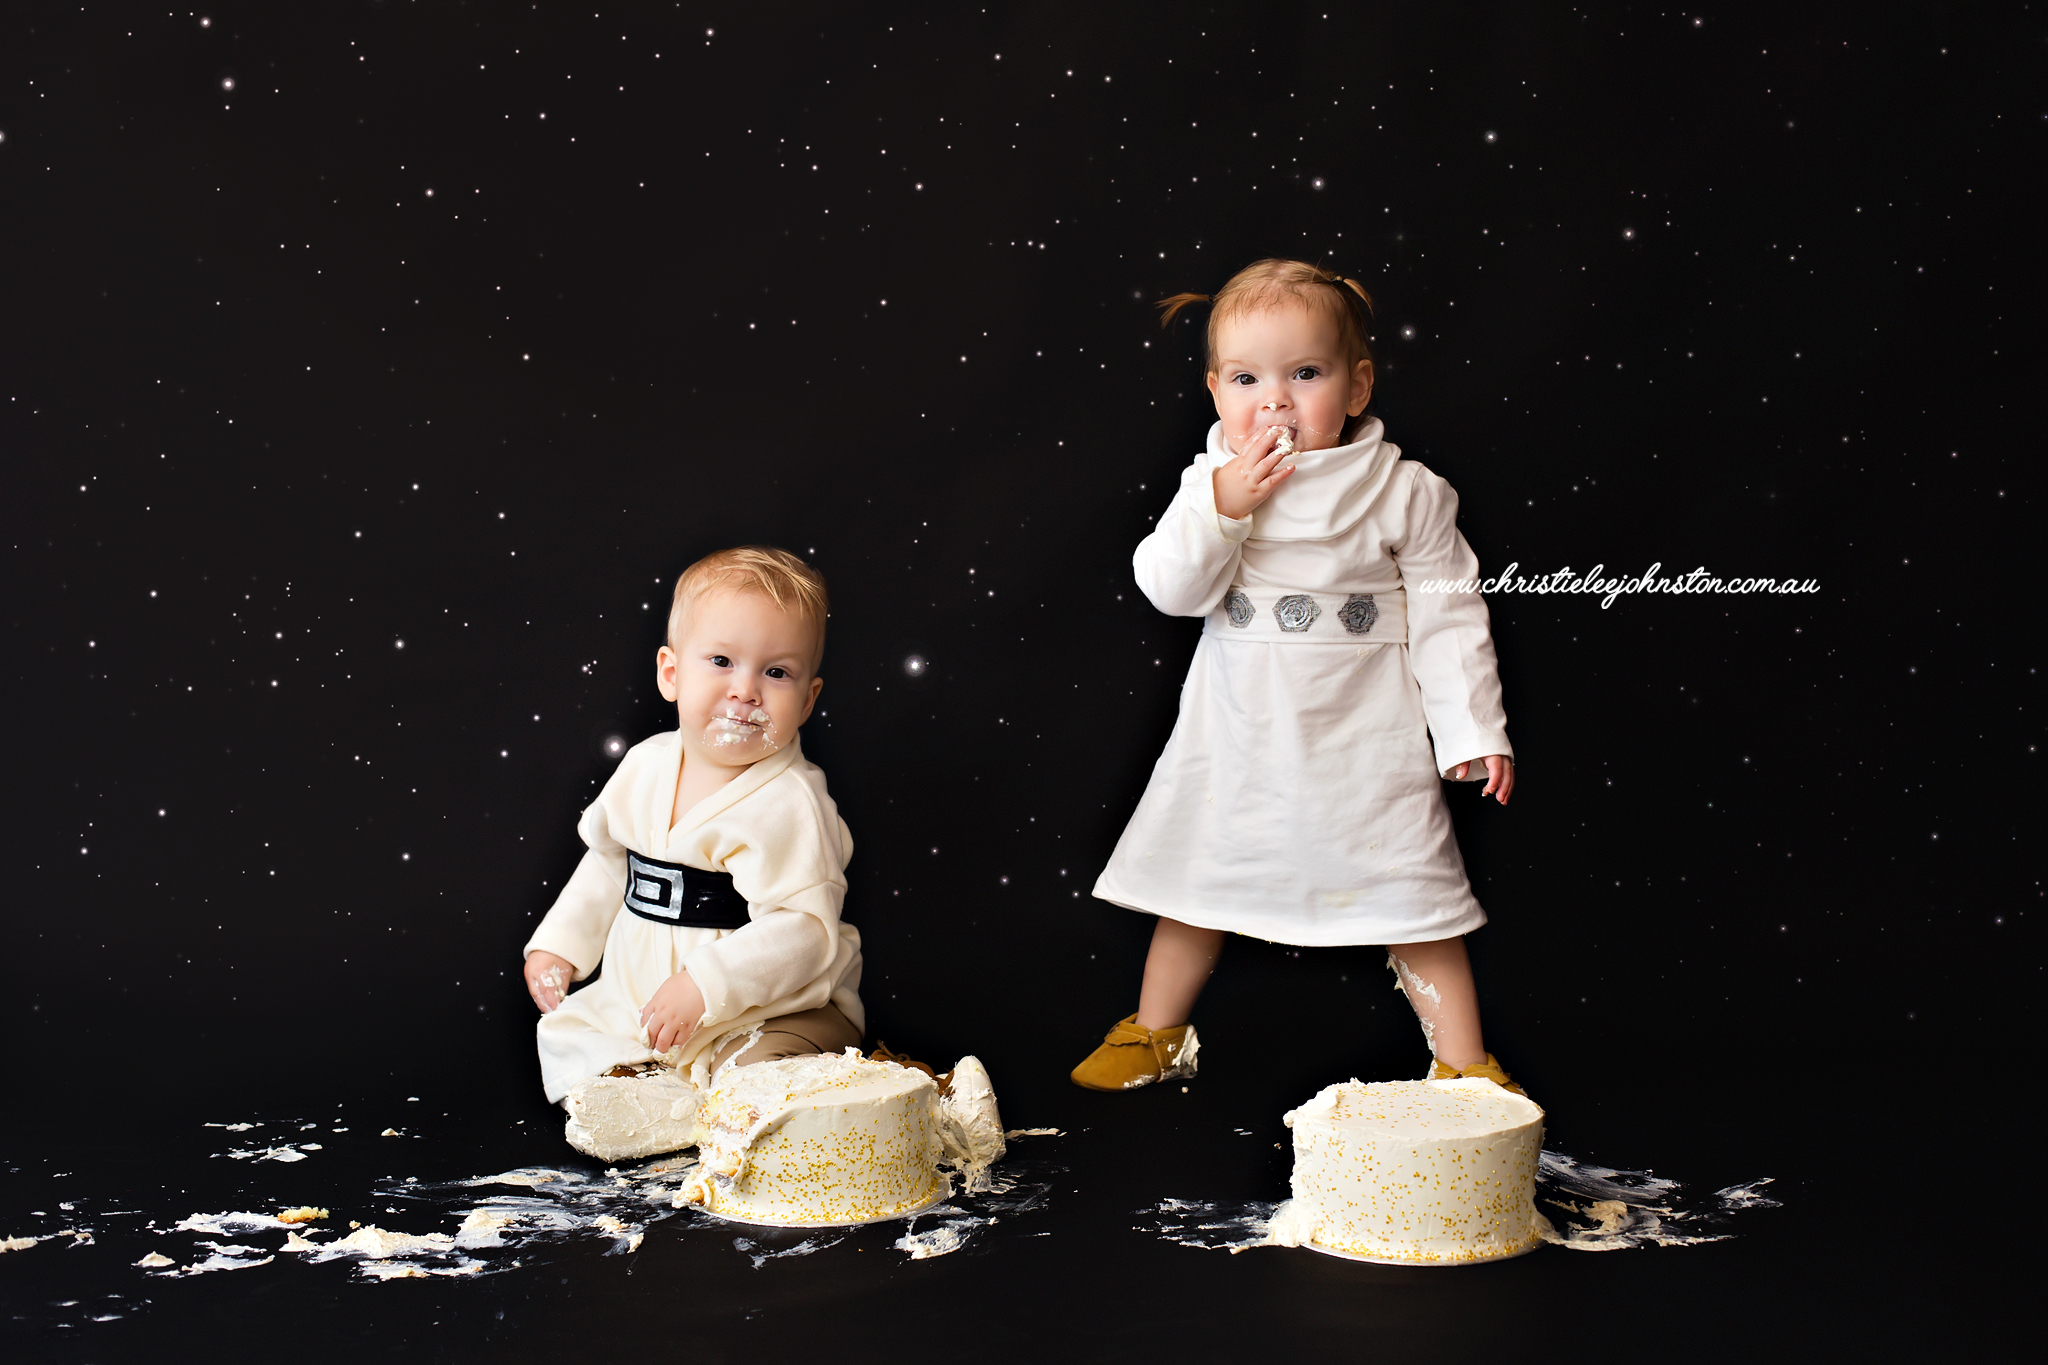 Toowoomba Cake Smash Photographer